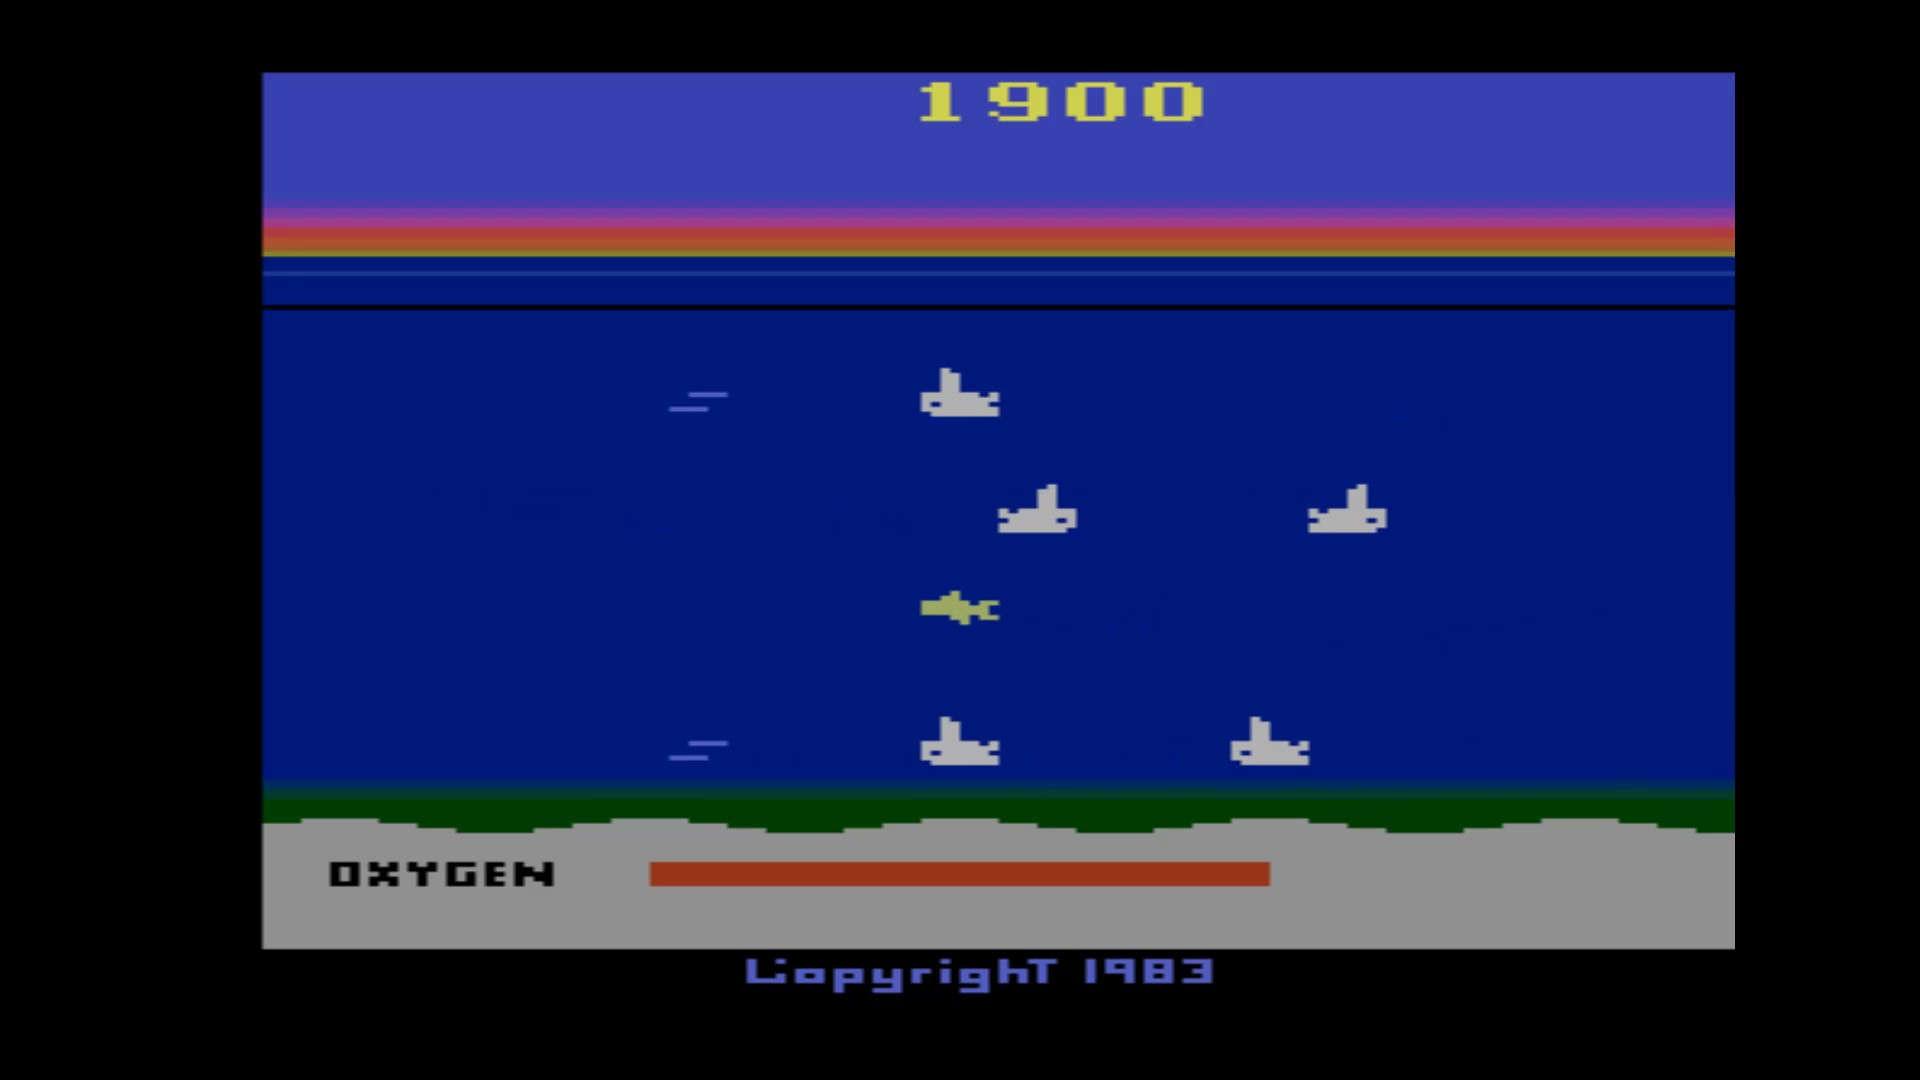 Seaquest 1,900 points